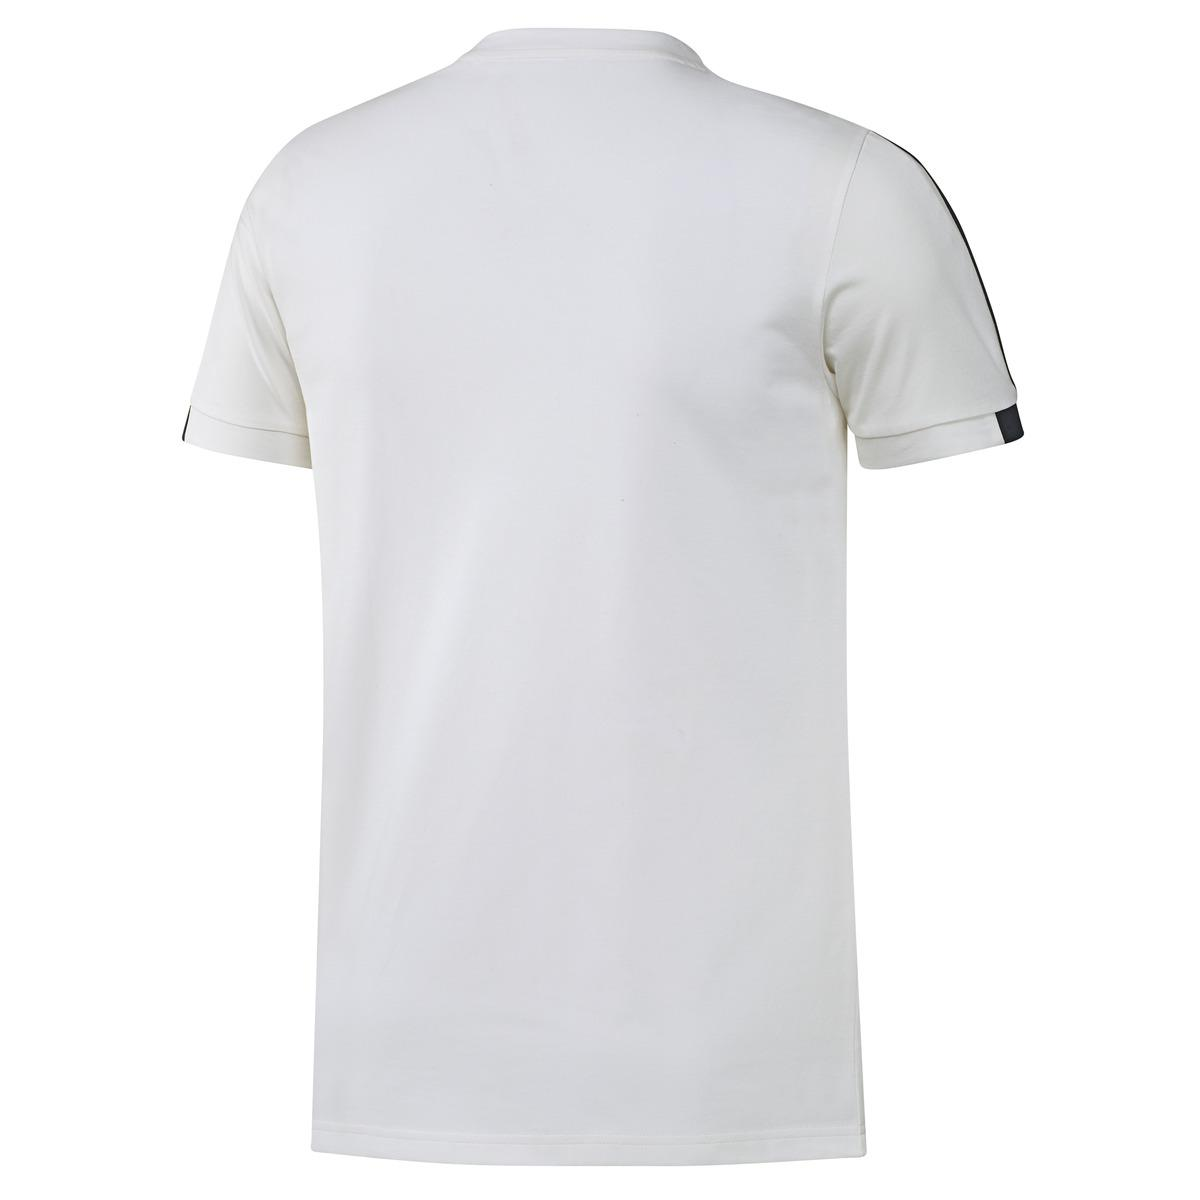 661604cc Adidas - White Real Madrid Cf 2018-2019 T-shirt for Men - Lyst. View  fullscreen